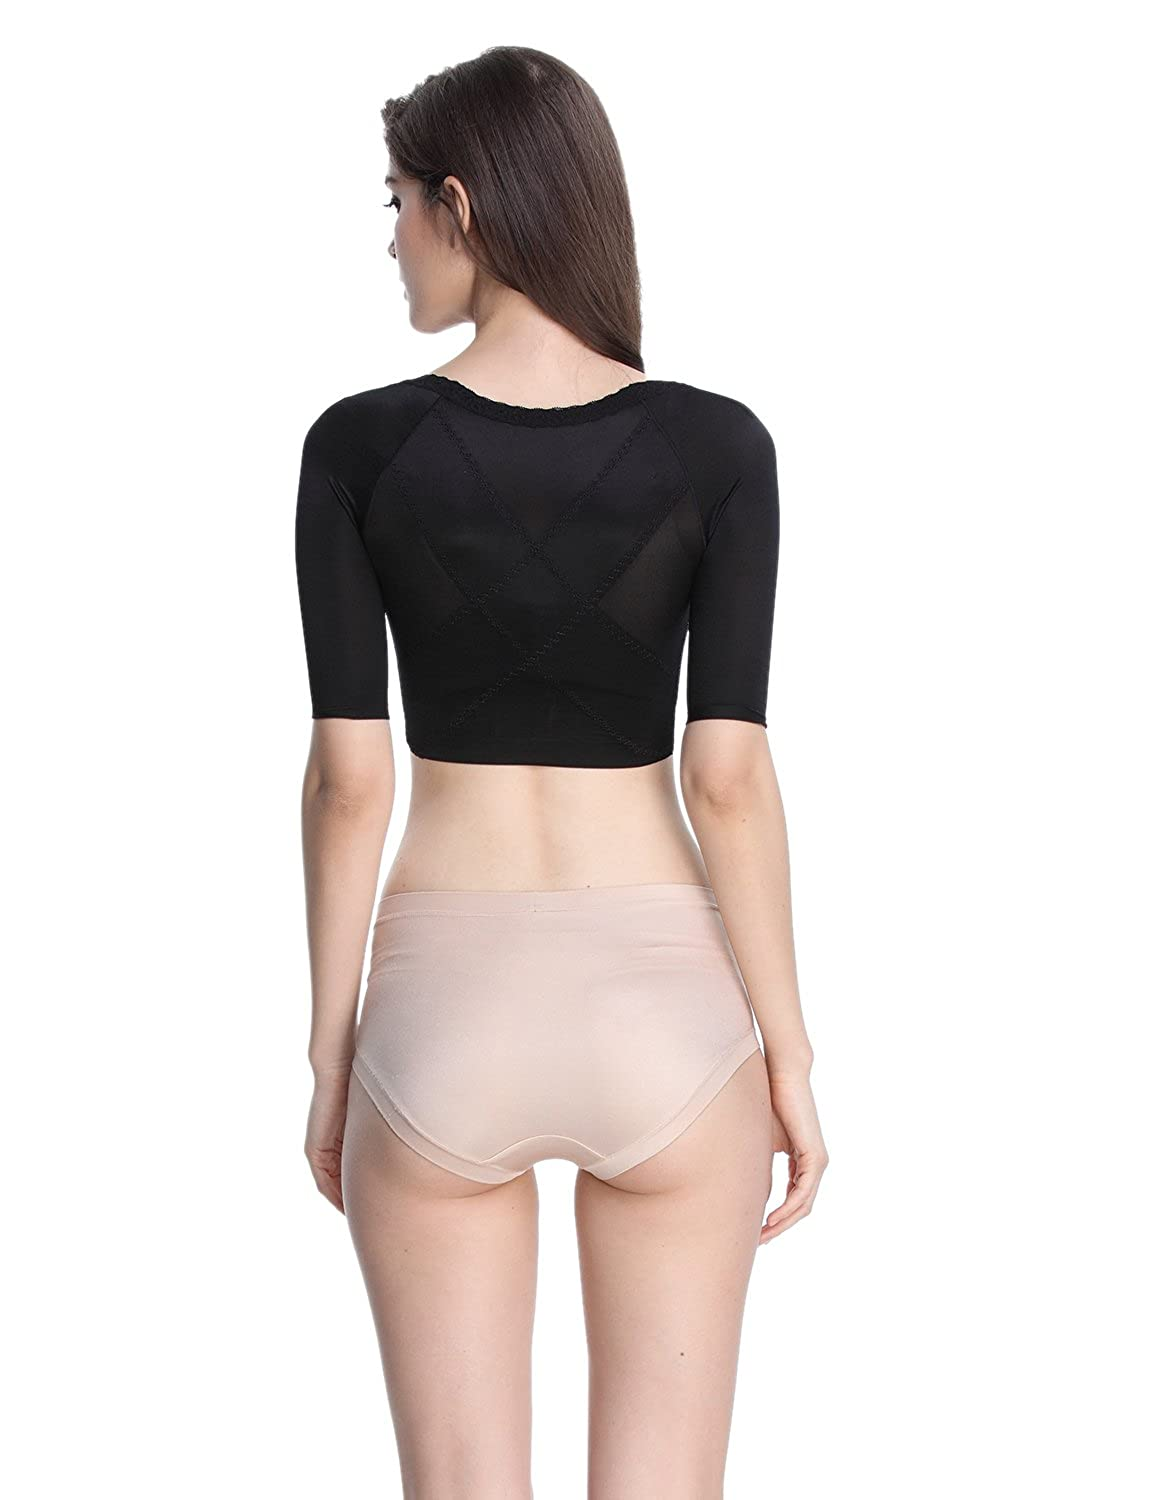 Shymay Womens Shapewear Tops Wear Your Own Bra Short Sleeve Crop Top Arm Shapers